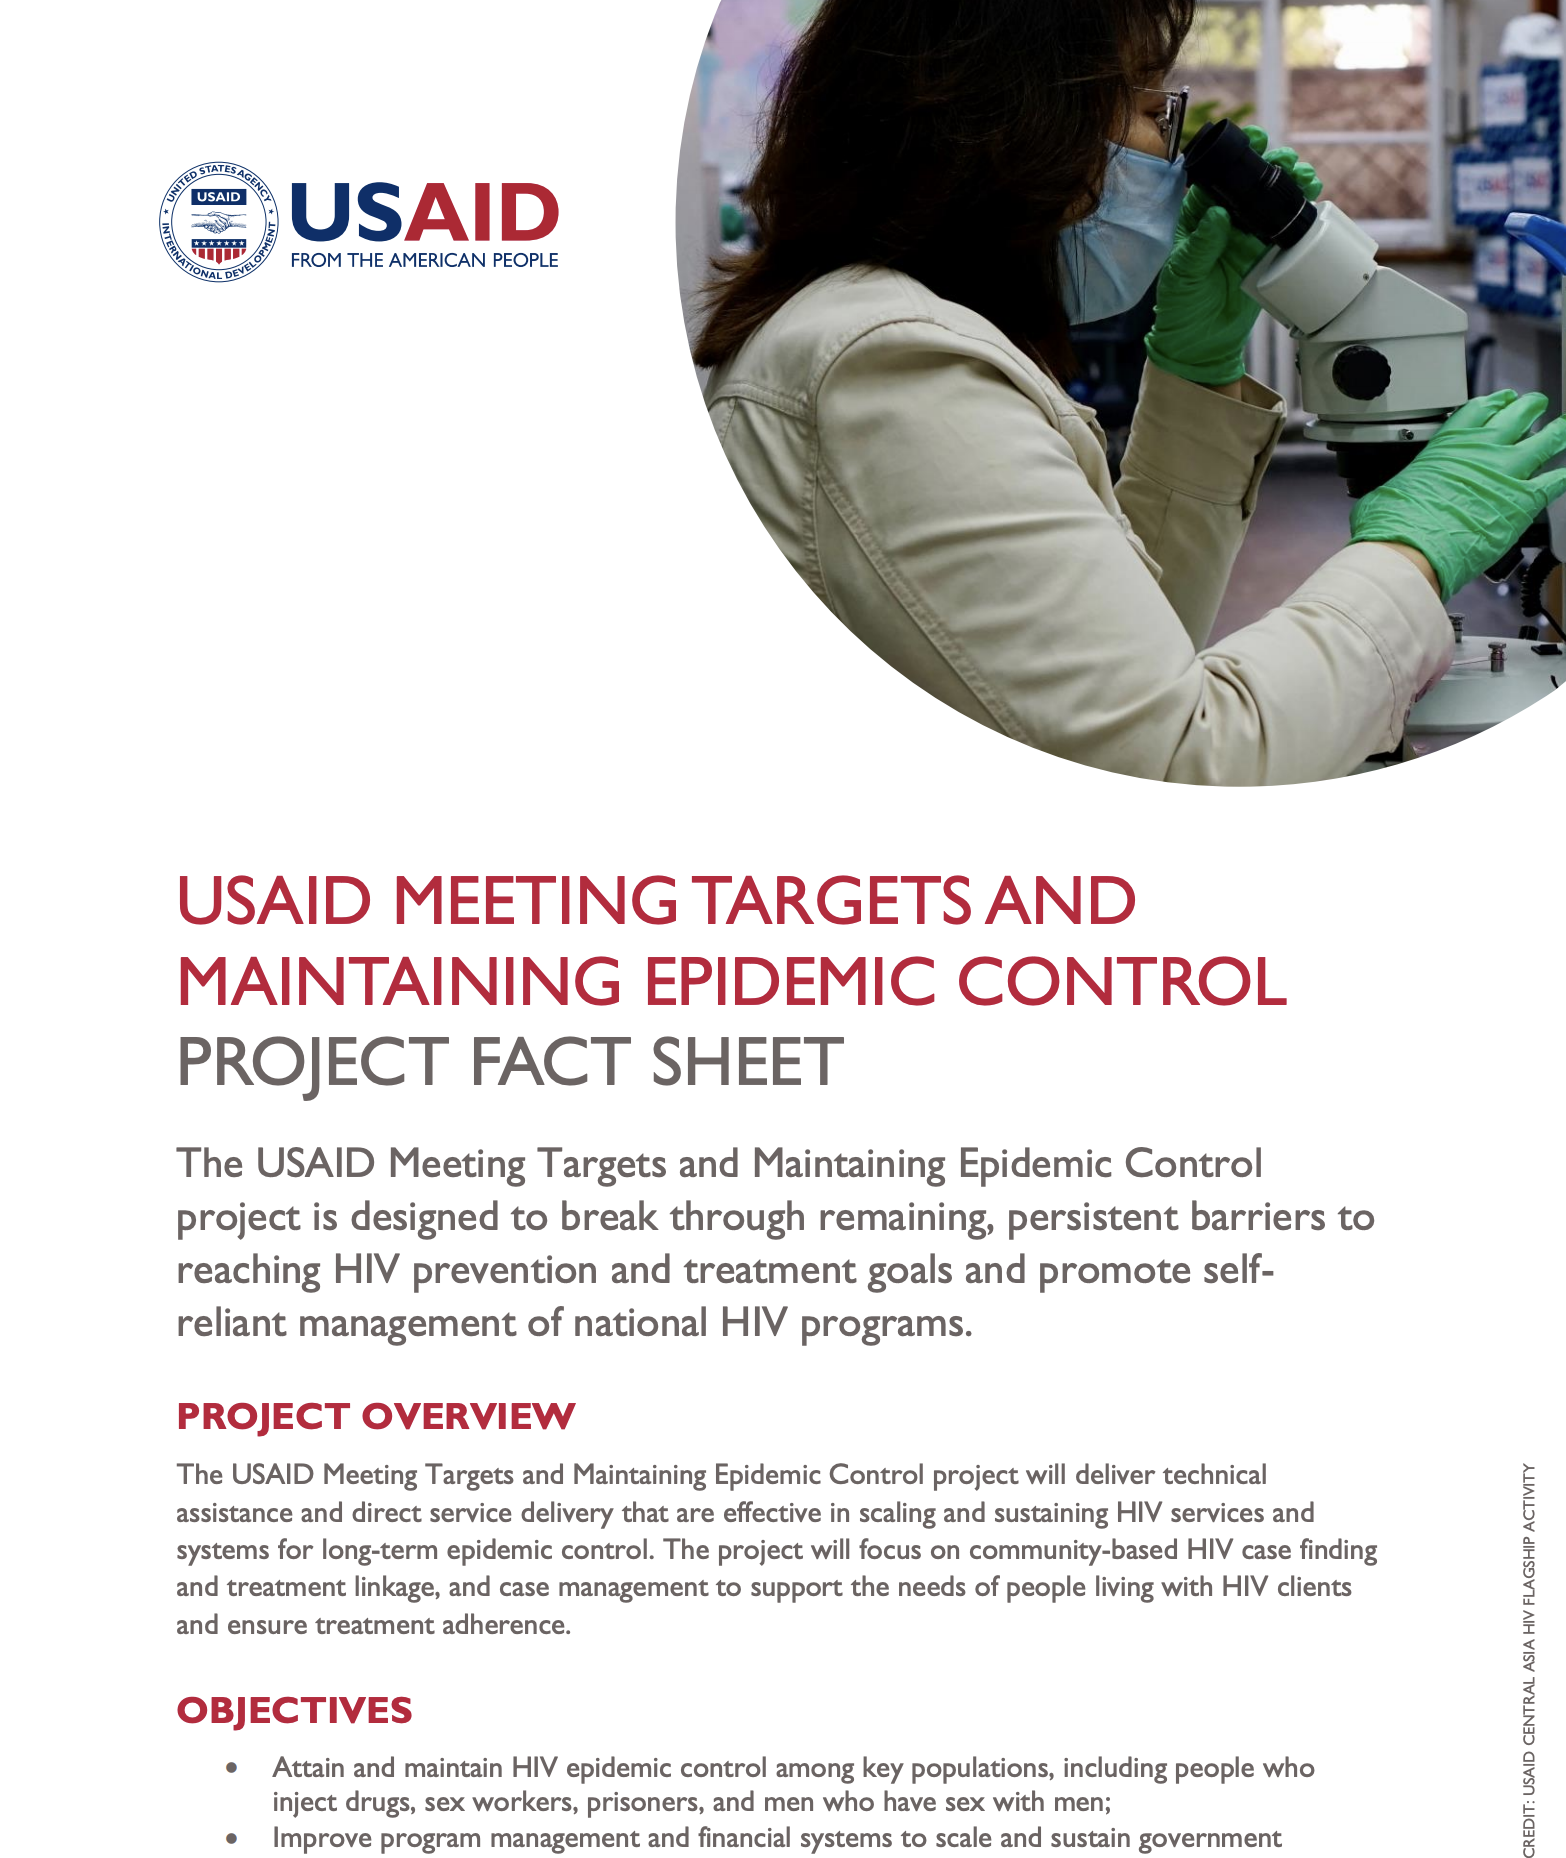 USAID Meeting Targets and Maintaining Epidemic Control